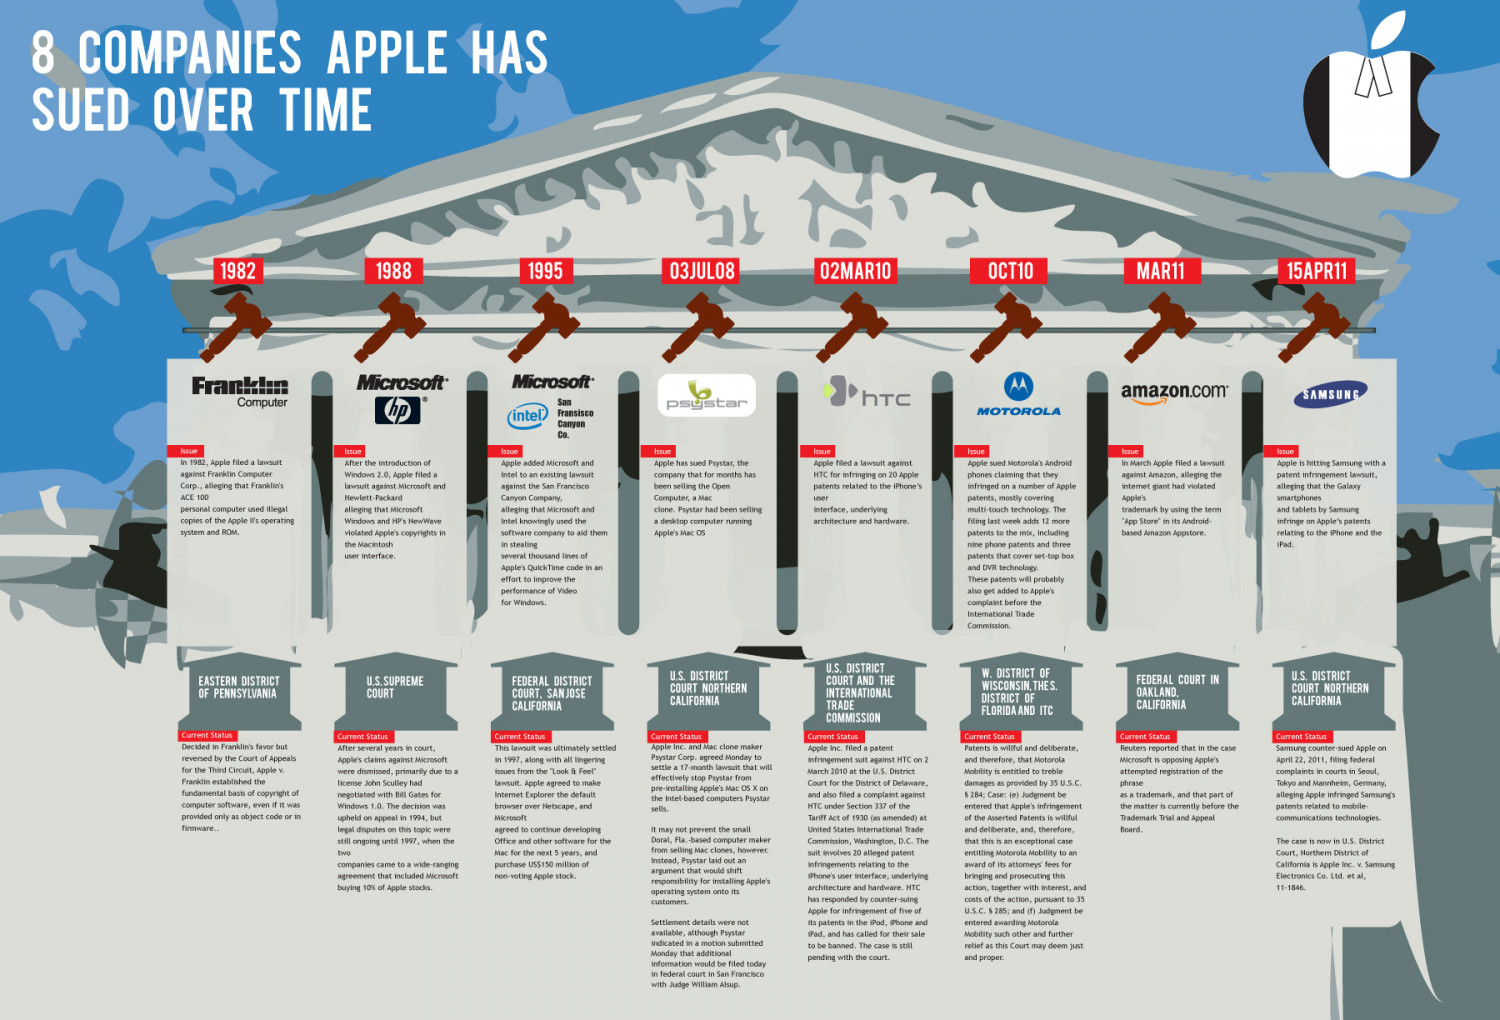 Companies Apple has sued over time Infographic